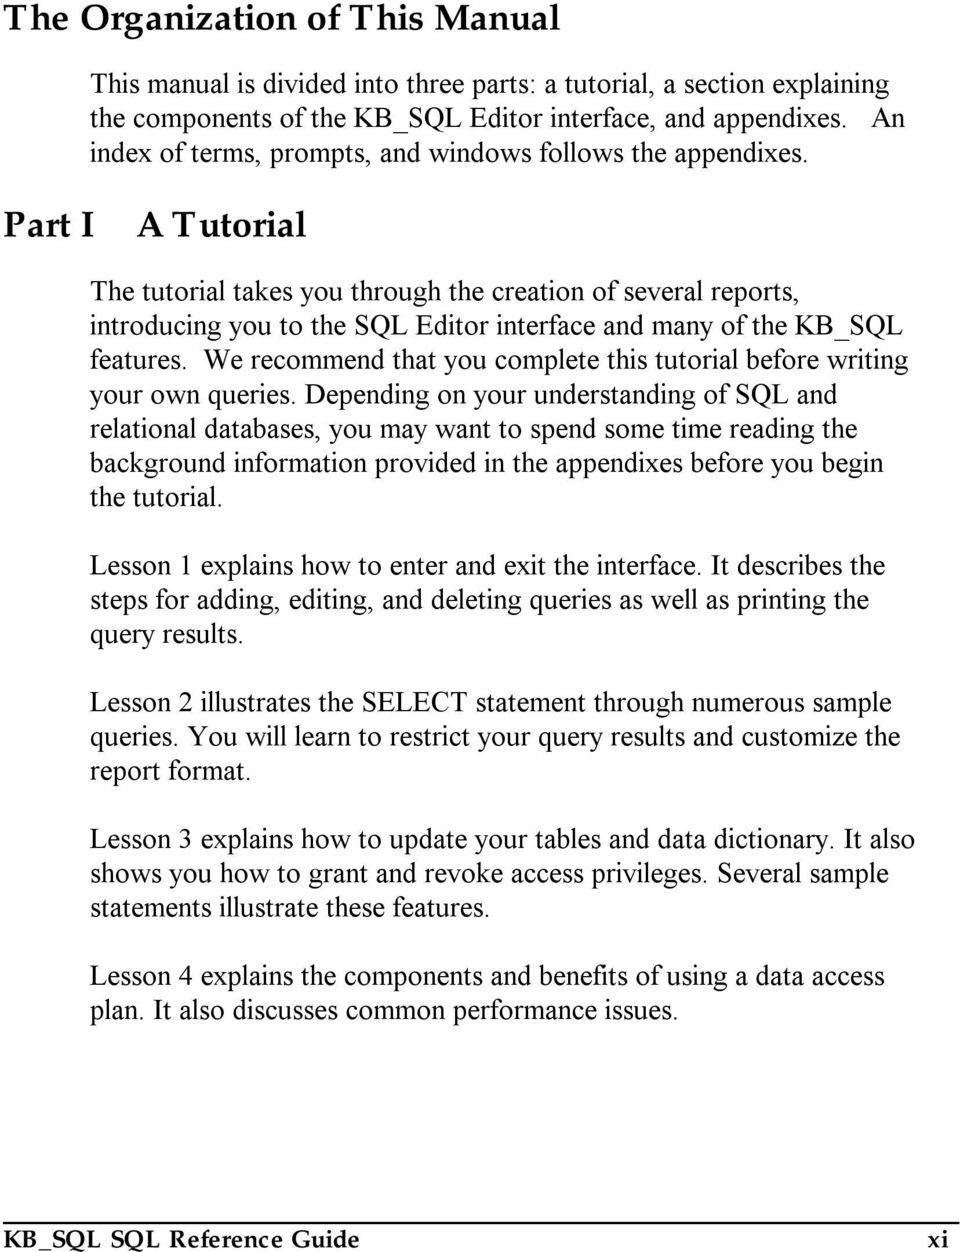 Part I A Tutorial The tutorial takes you through the creation of several reports, introducing you to the SQL Editor interface and many of the KB_SQL features.